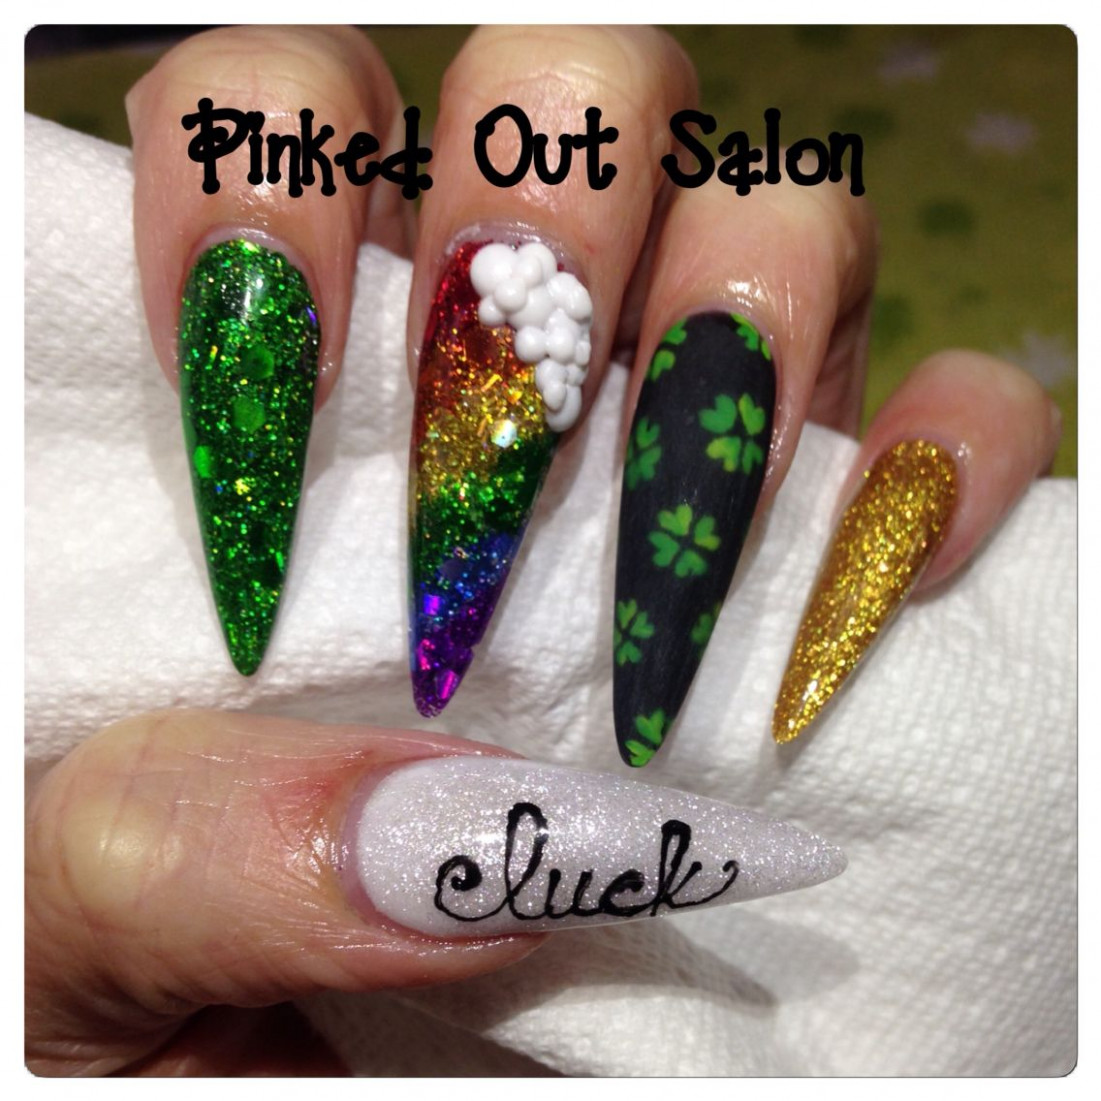 St Patrick's Day nail art. Check out Pinked Out Salon on FB